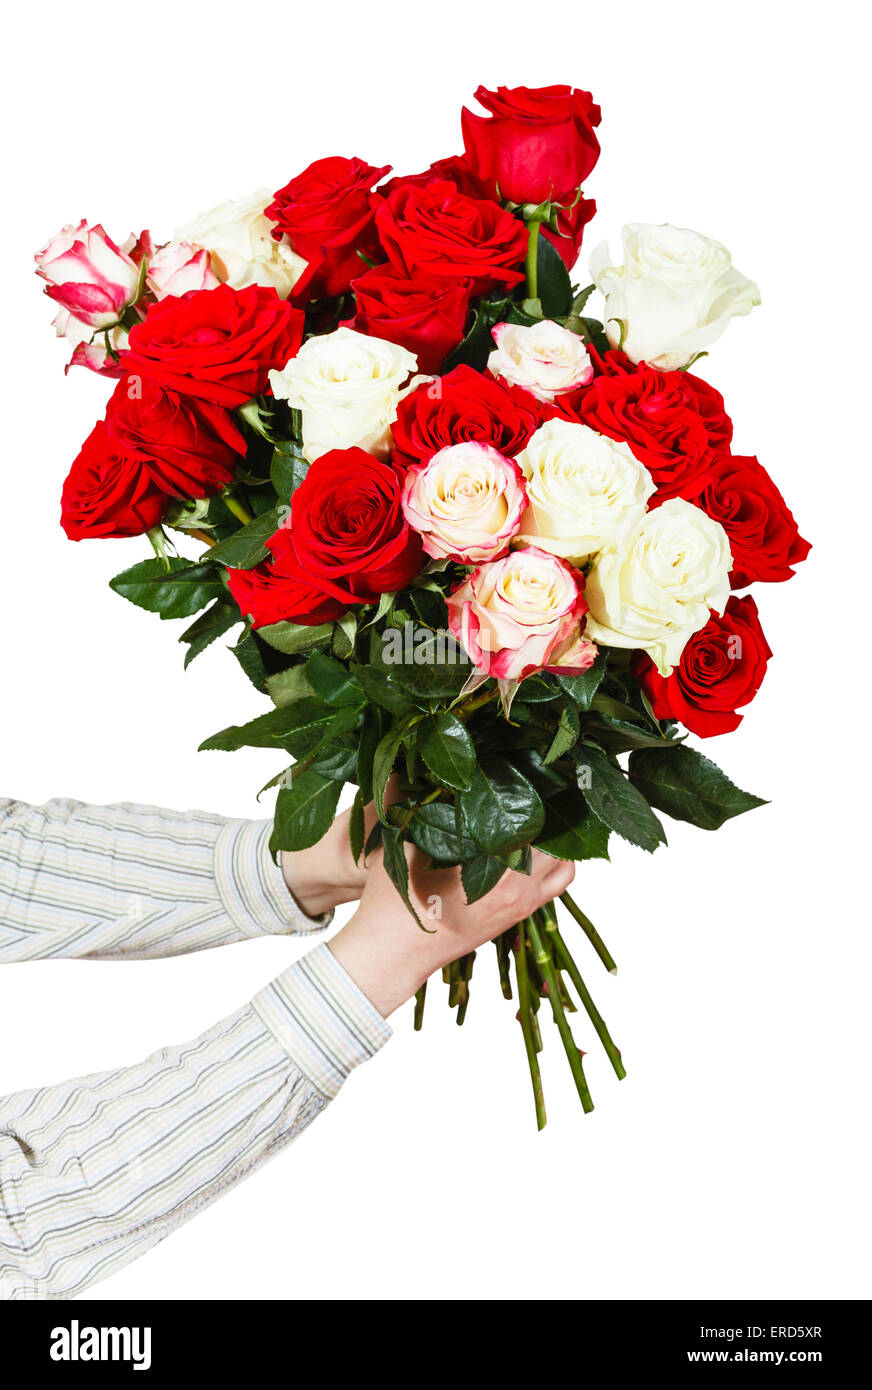 Bouquet Flowers Hands Giving Stock Photos & Bouquet Flowers Hands ...